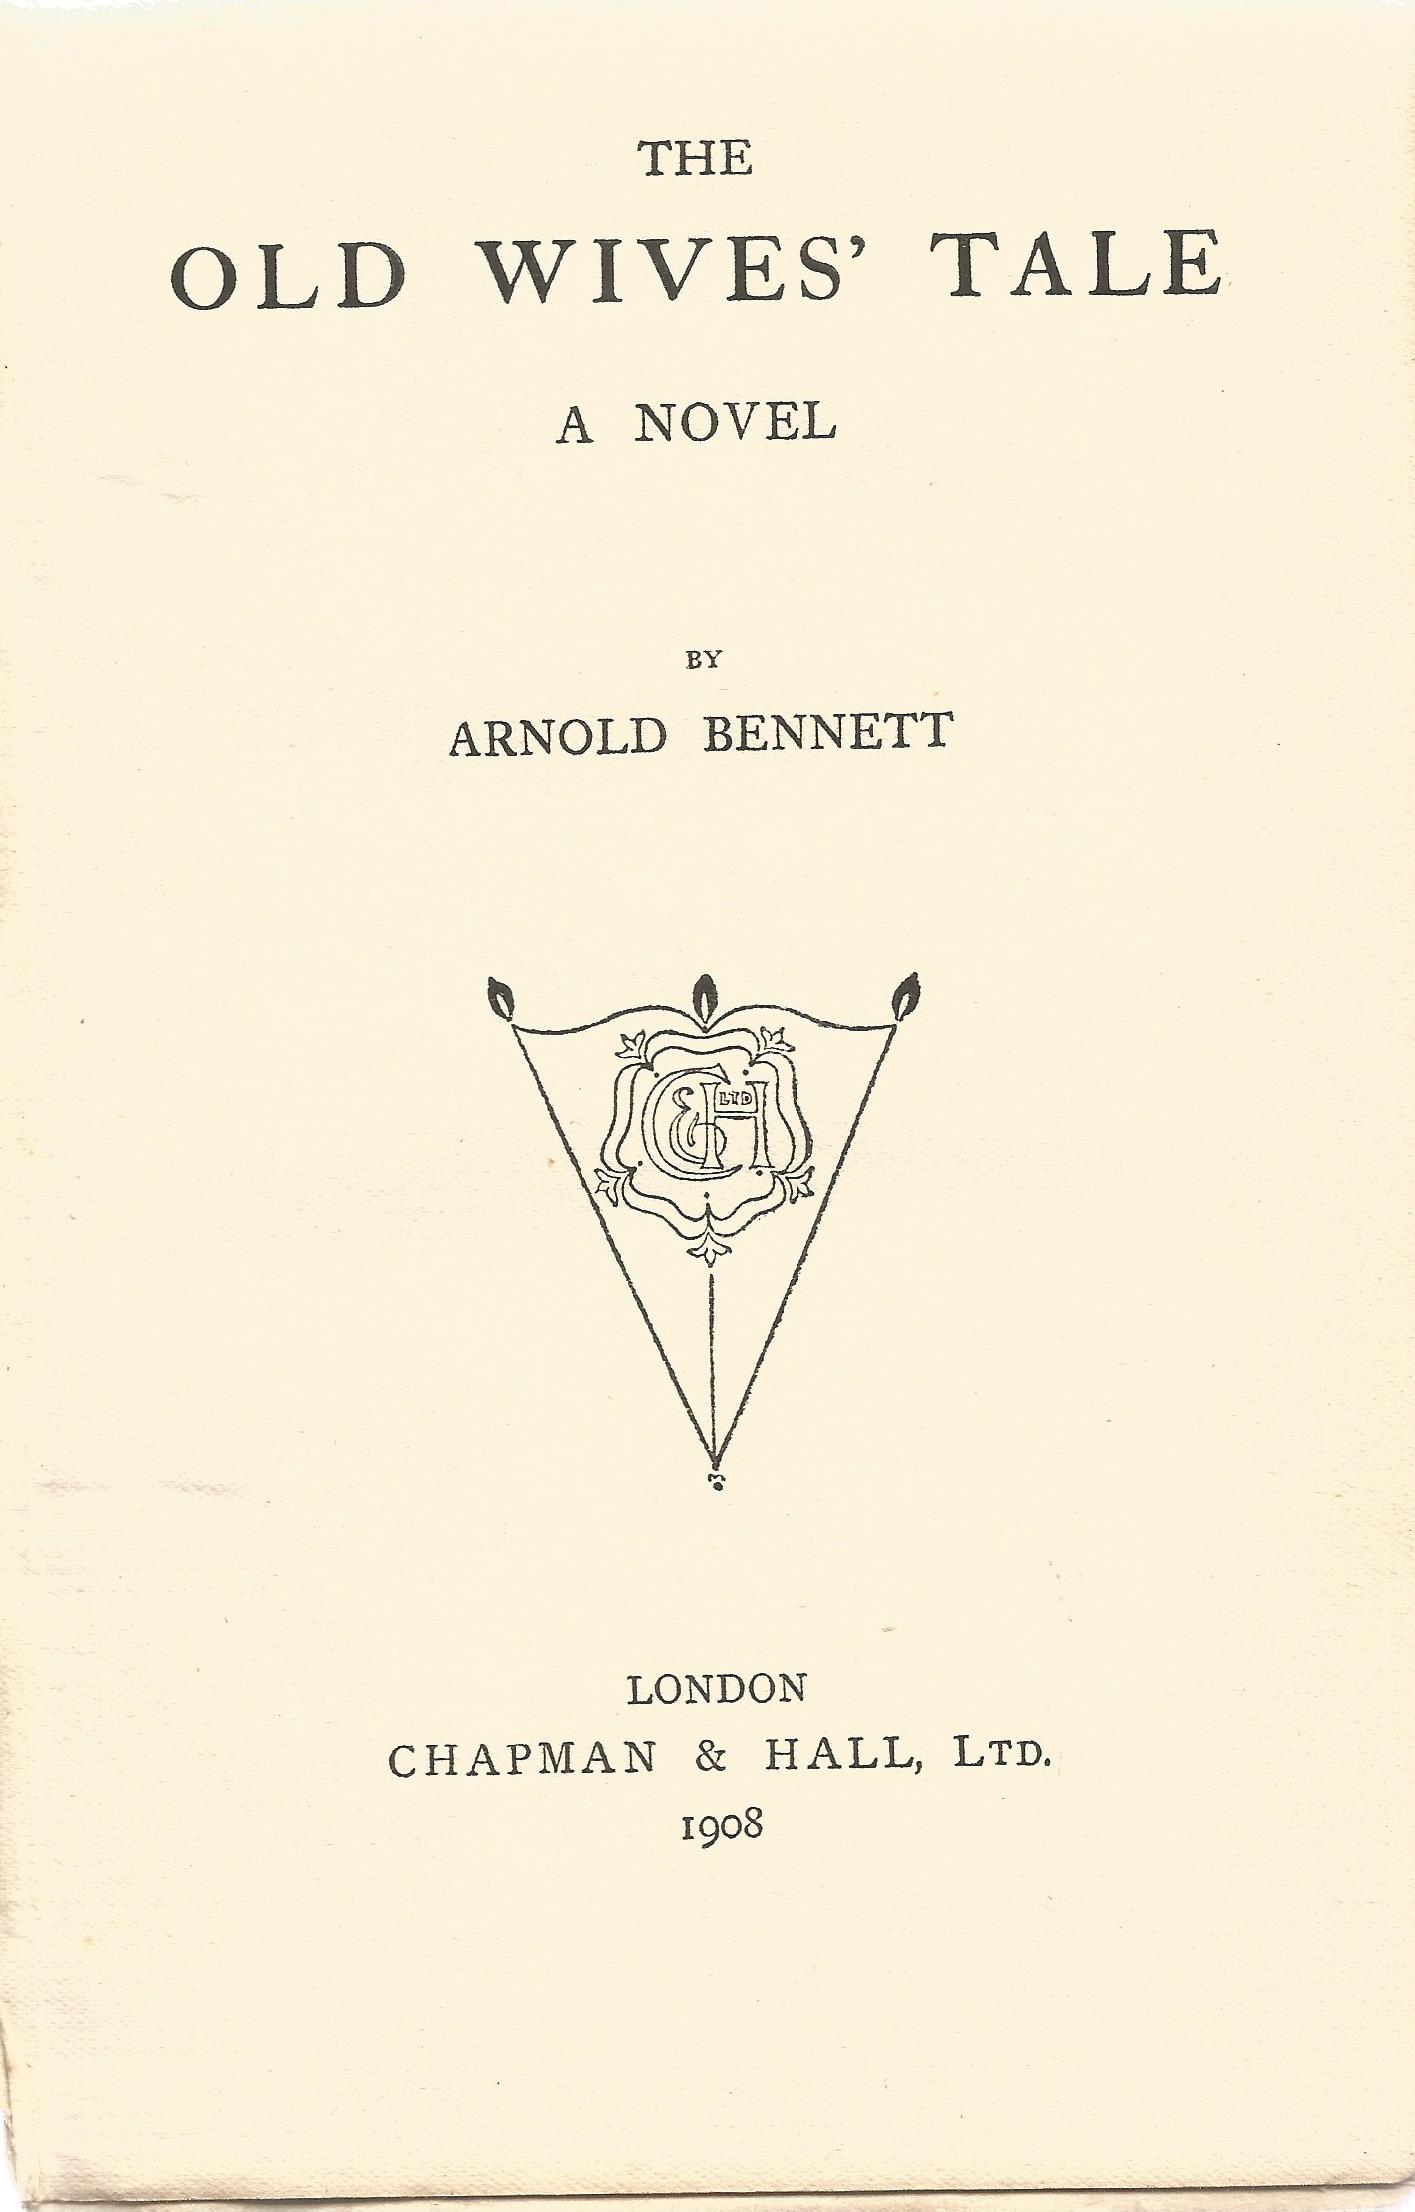 Hardback Book The Old Wives' Tale A Novel by Arnold Bennett 1908 First Edition published by - Image 2 of 2